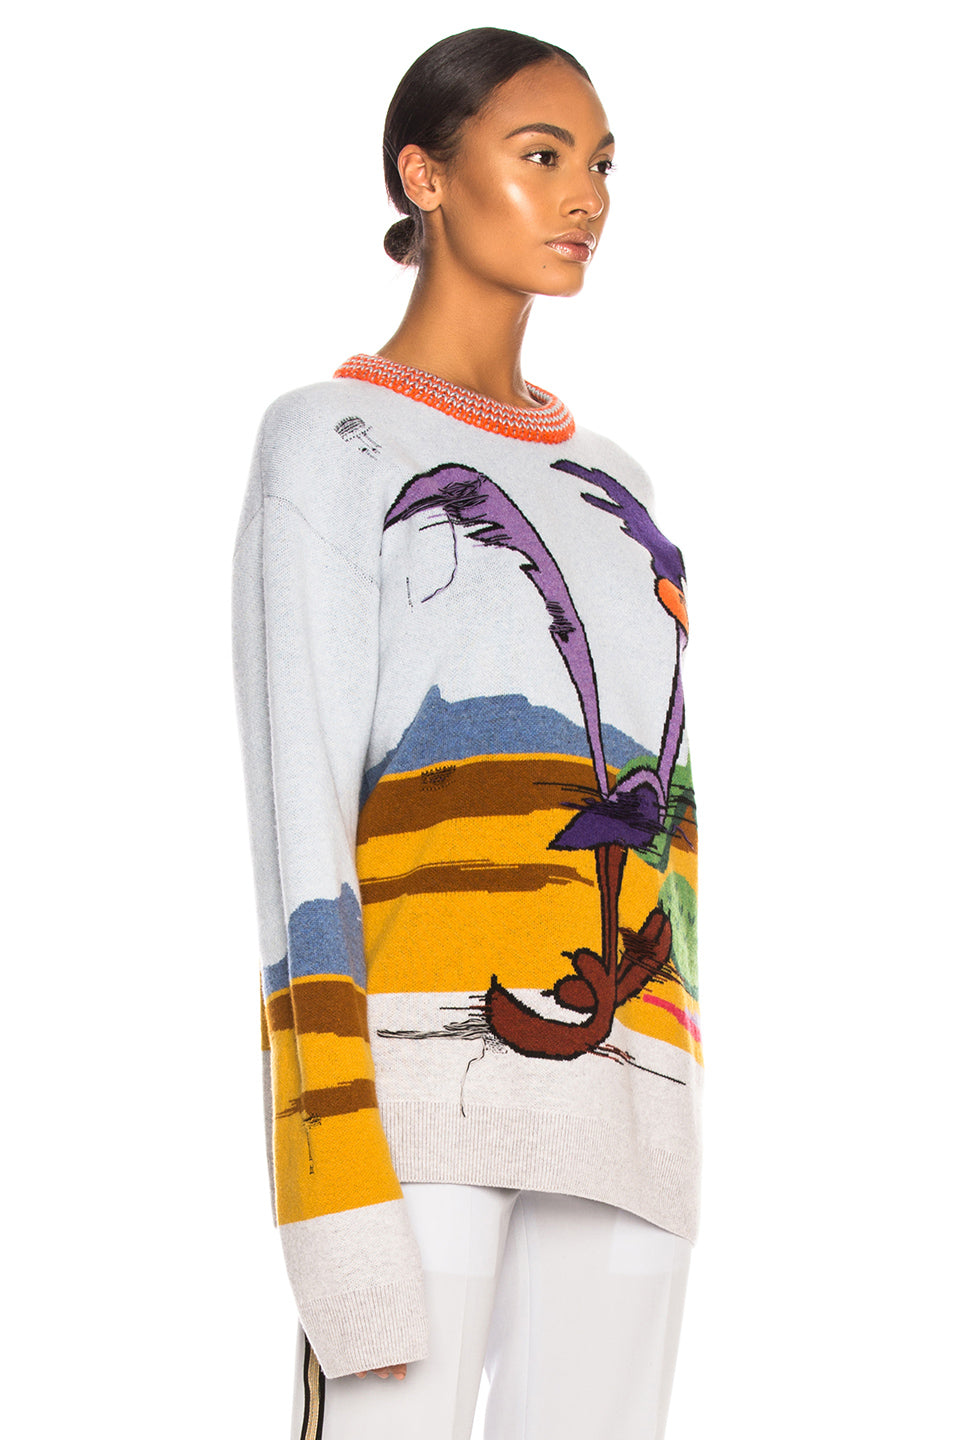 CALVIN KLEIN 205W39NYC | Jacquard Looney Tunes Crewneck Sweater